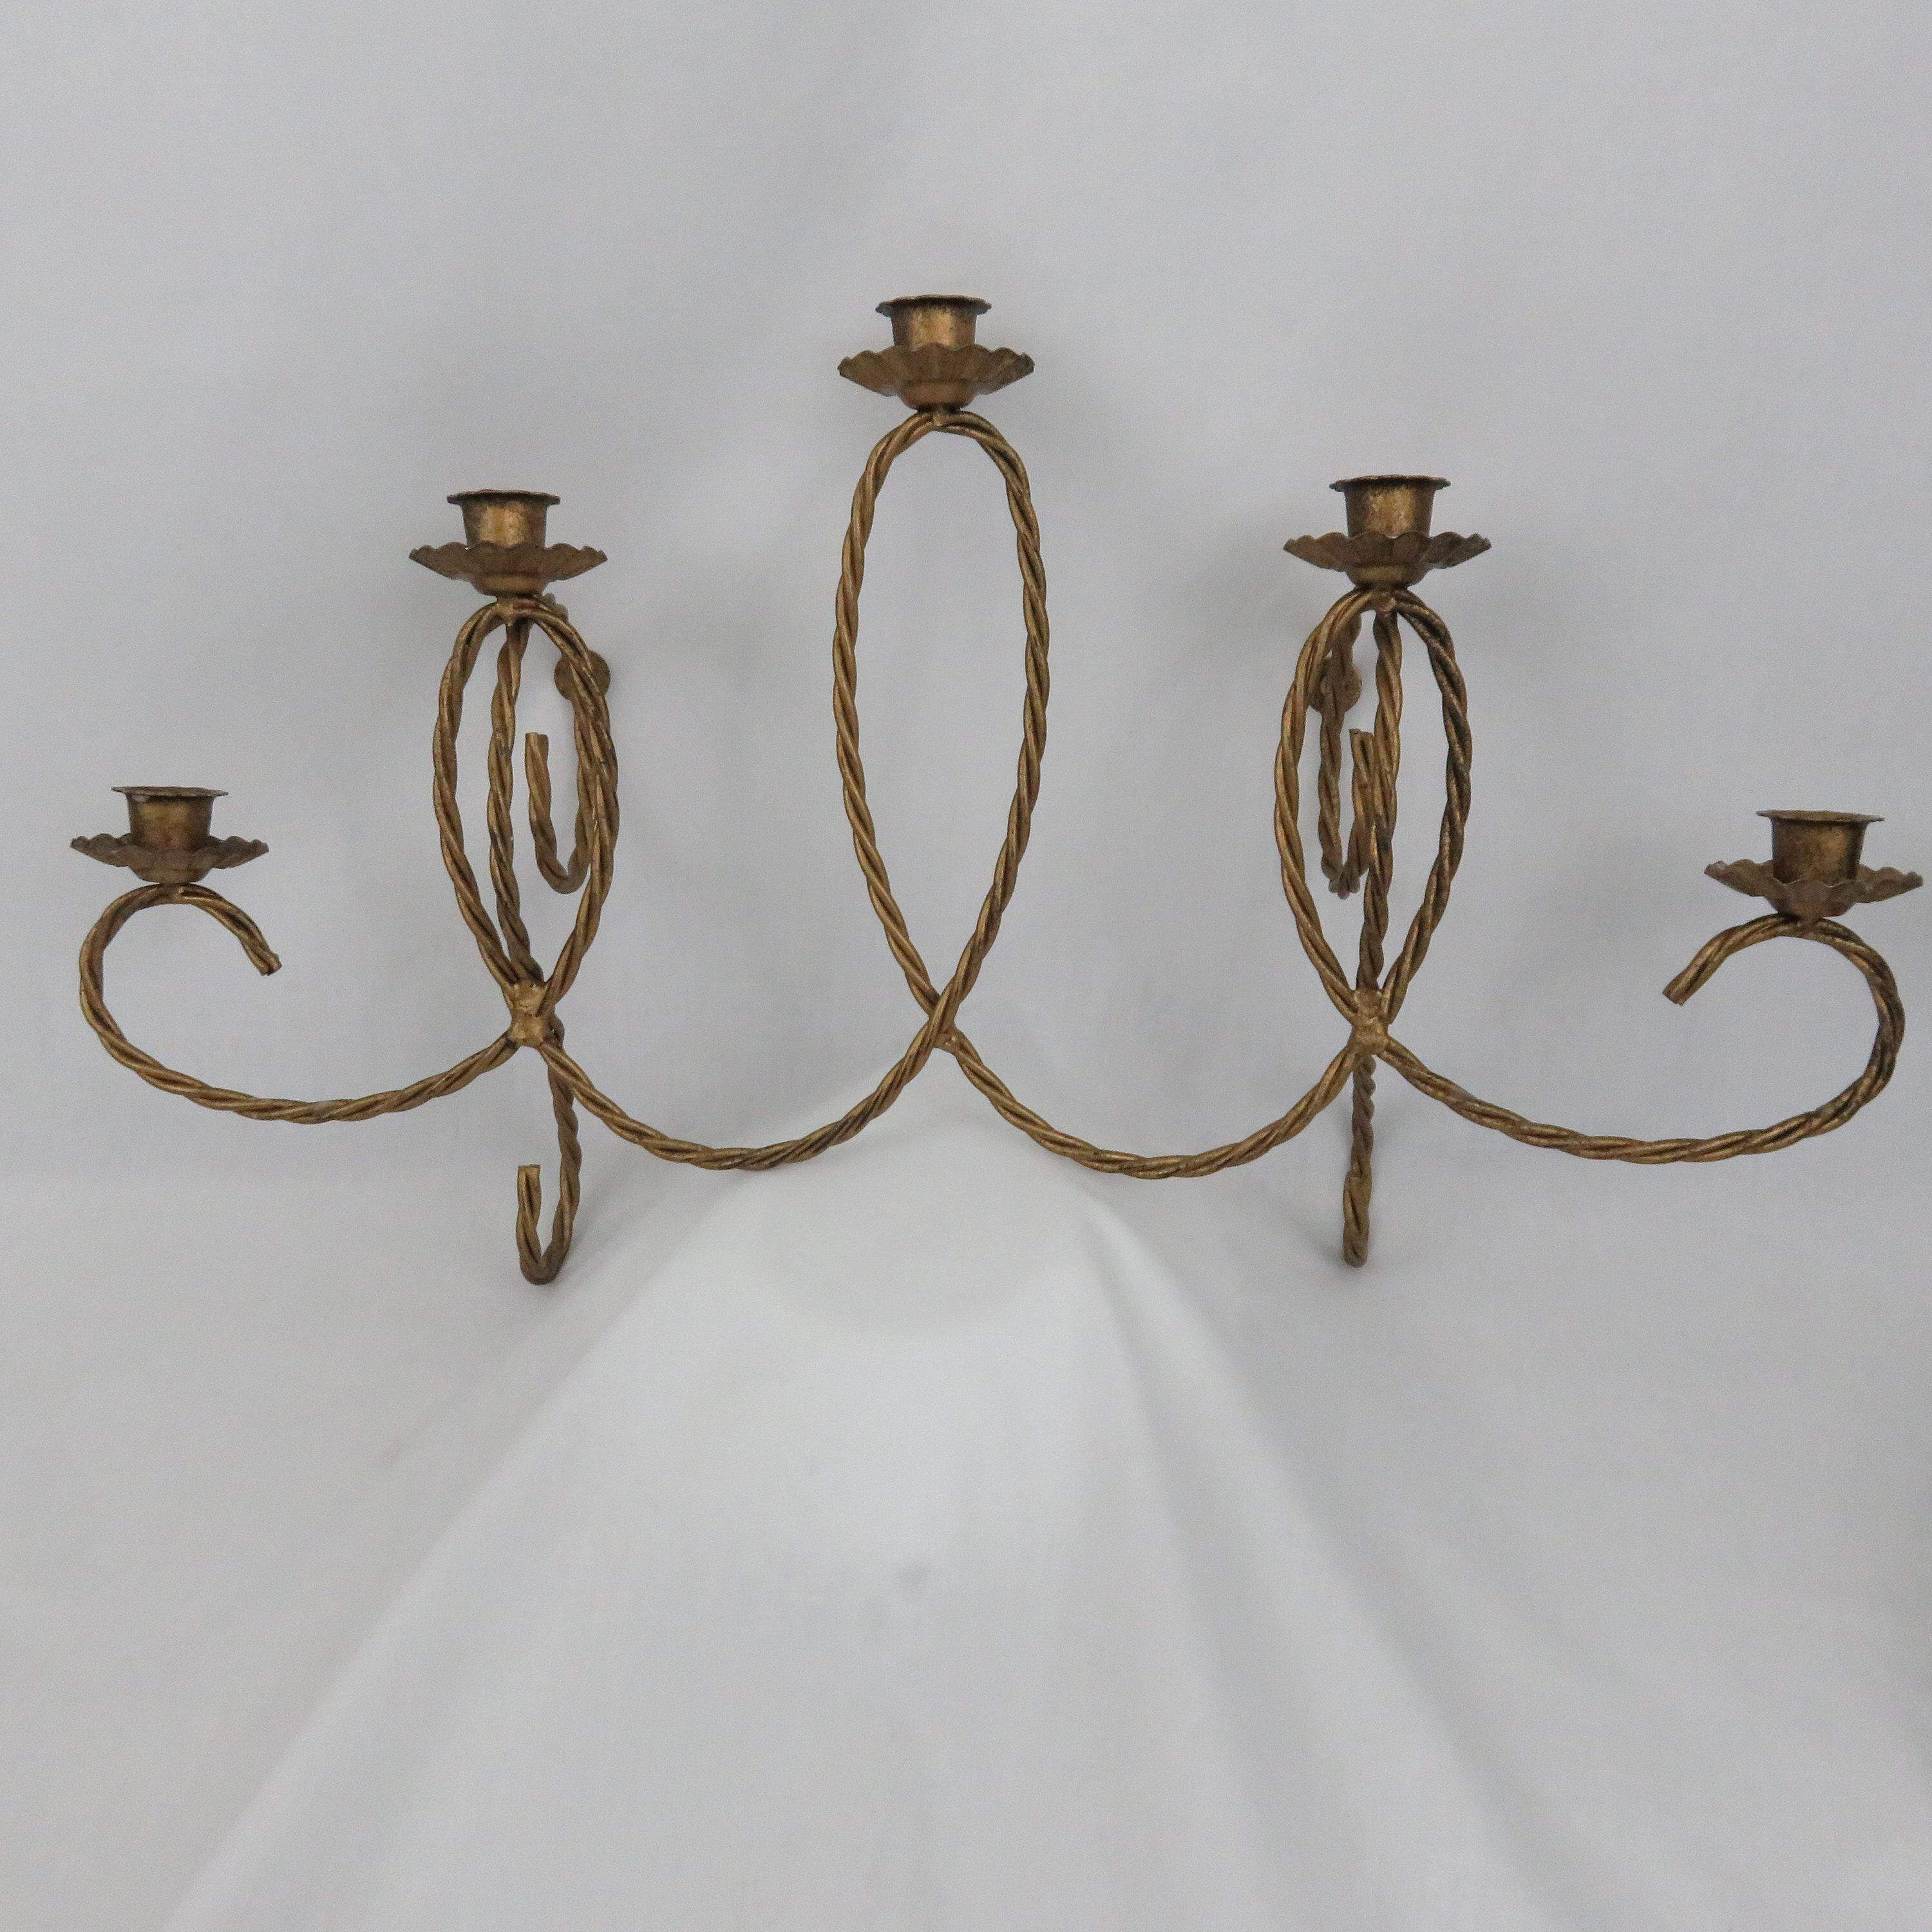 Pair of Vintage Candle Antique Gold TwistedMetal Rope Design Wall Sconces